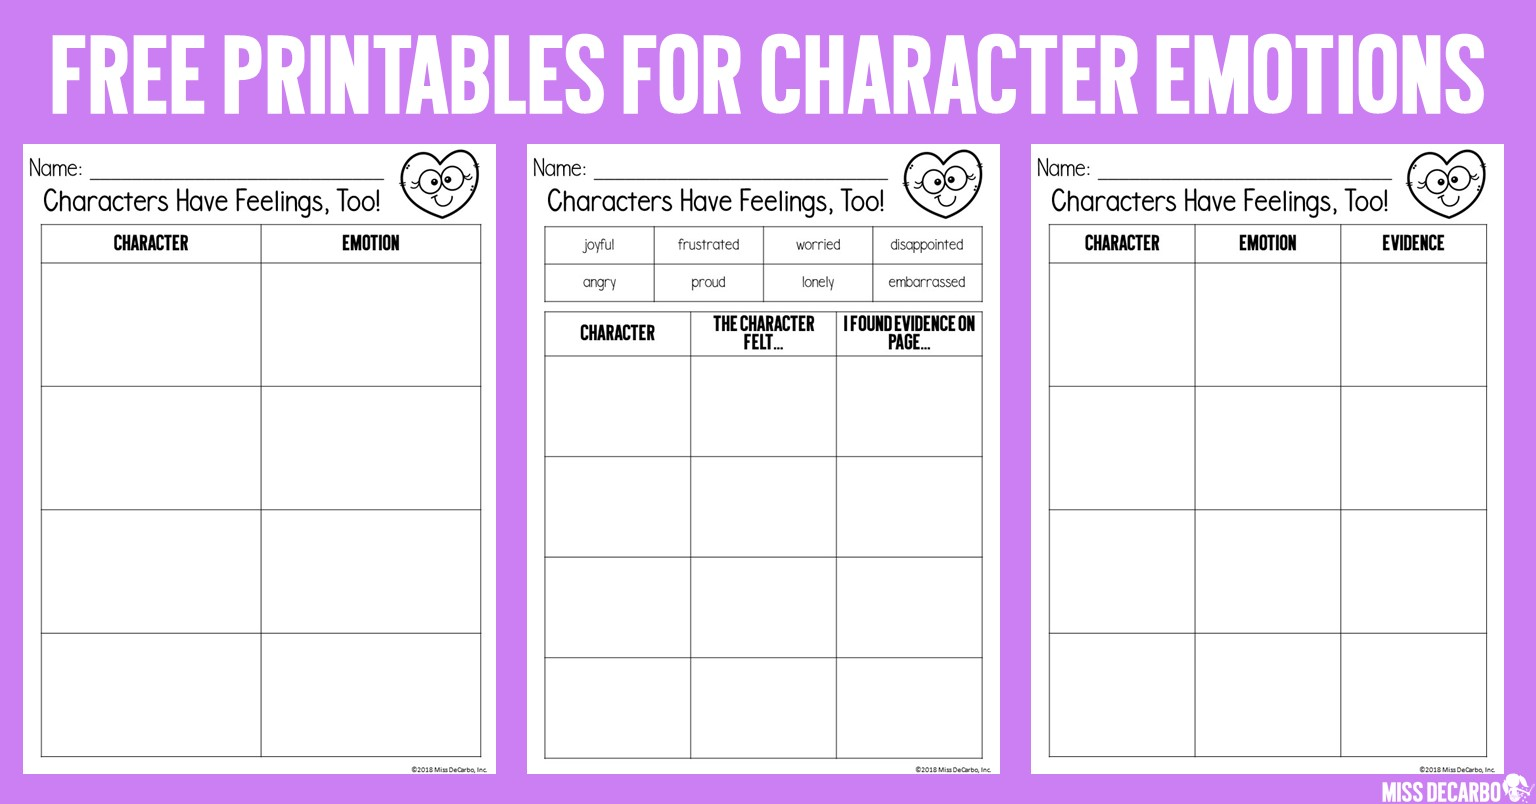 FREE printables and graphic organizers to teach character emotions!